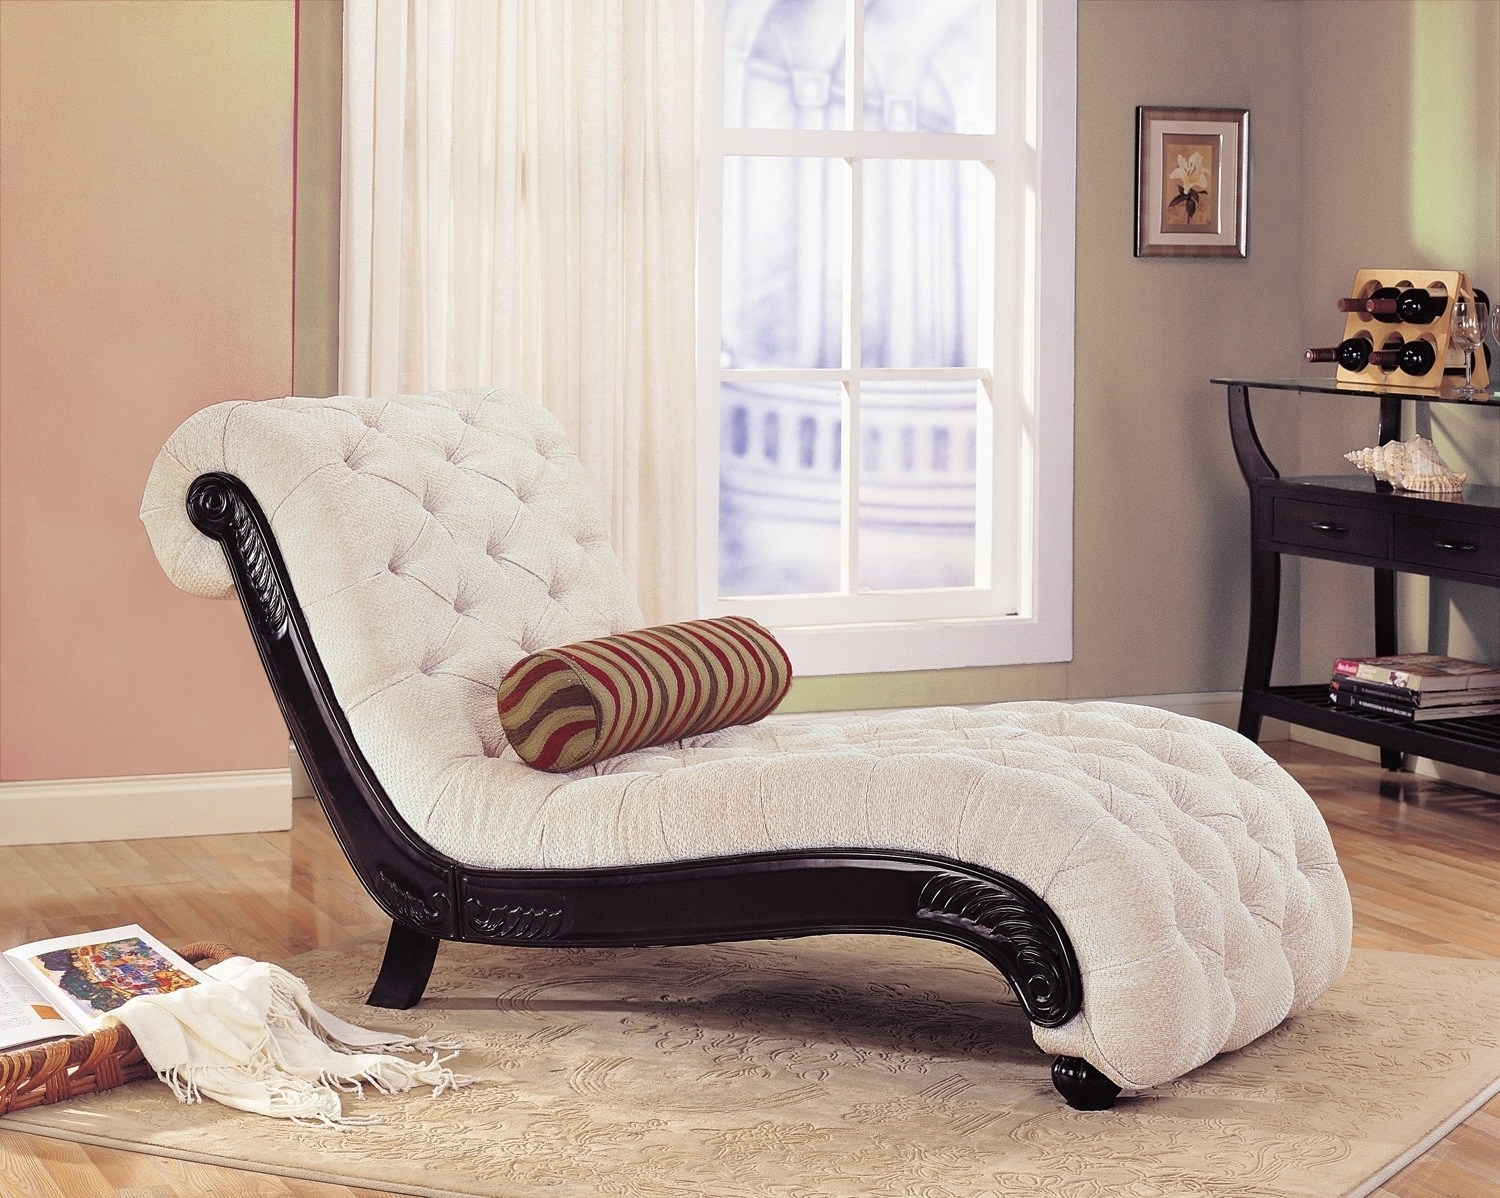 Home Design : 81 Appealing Modern Chaise Lounge Chairss Inside Preferred Chaises For Bedroom (View 2 of 15)